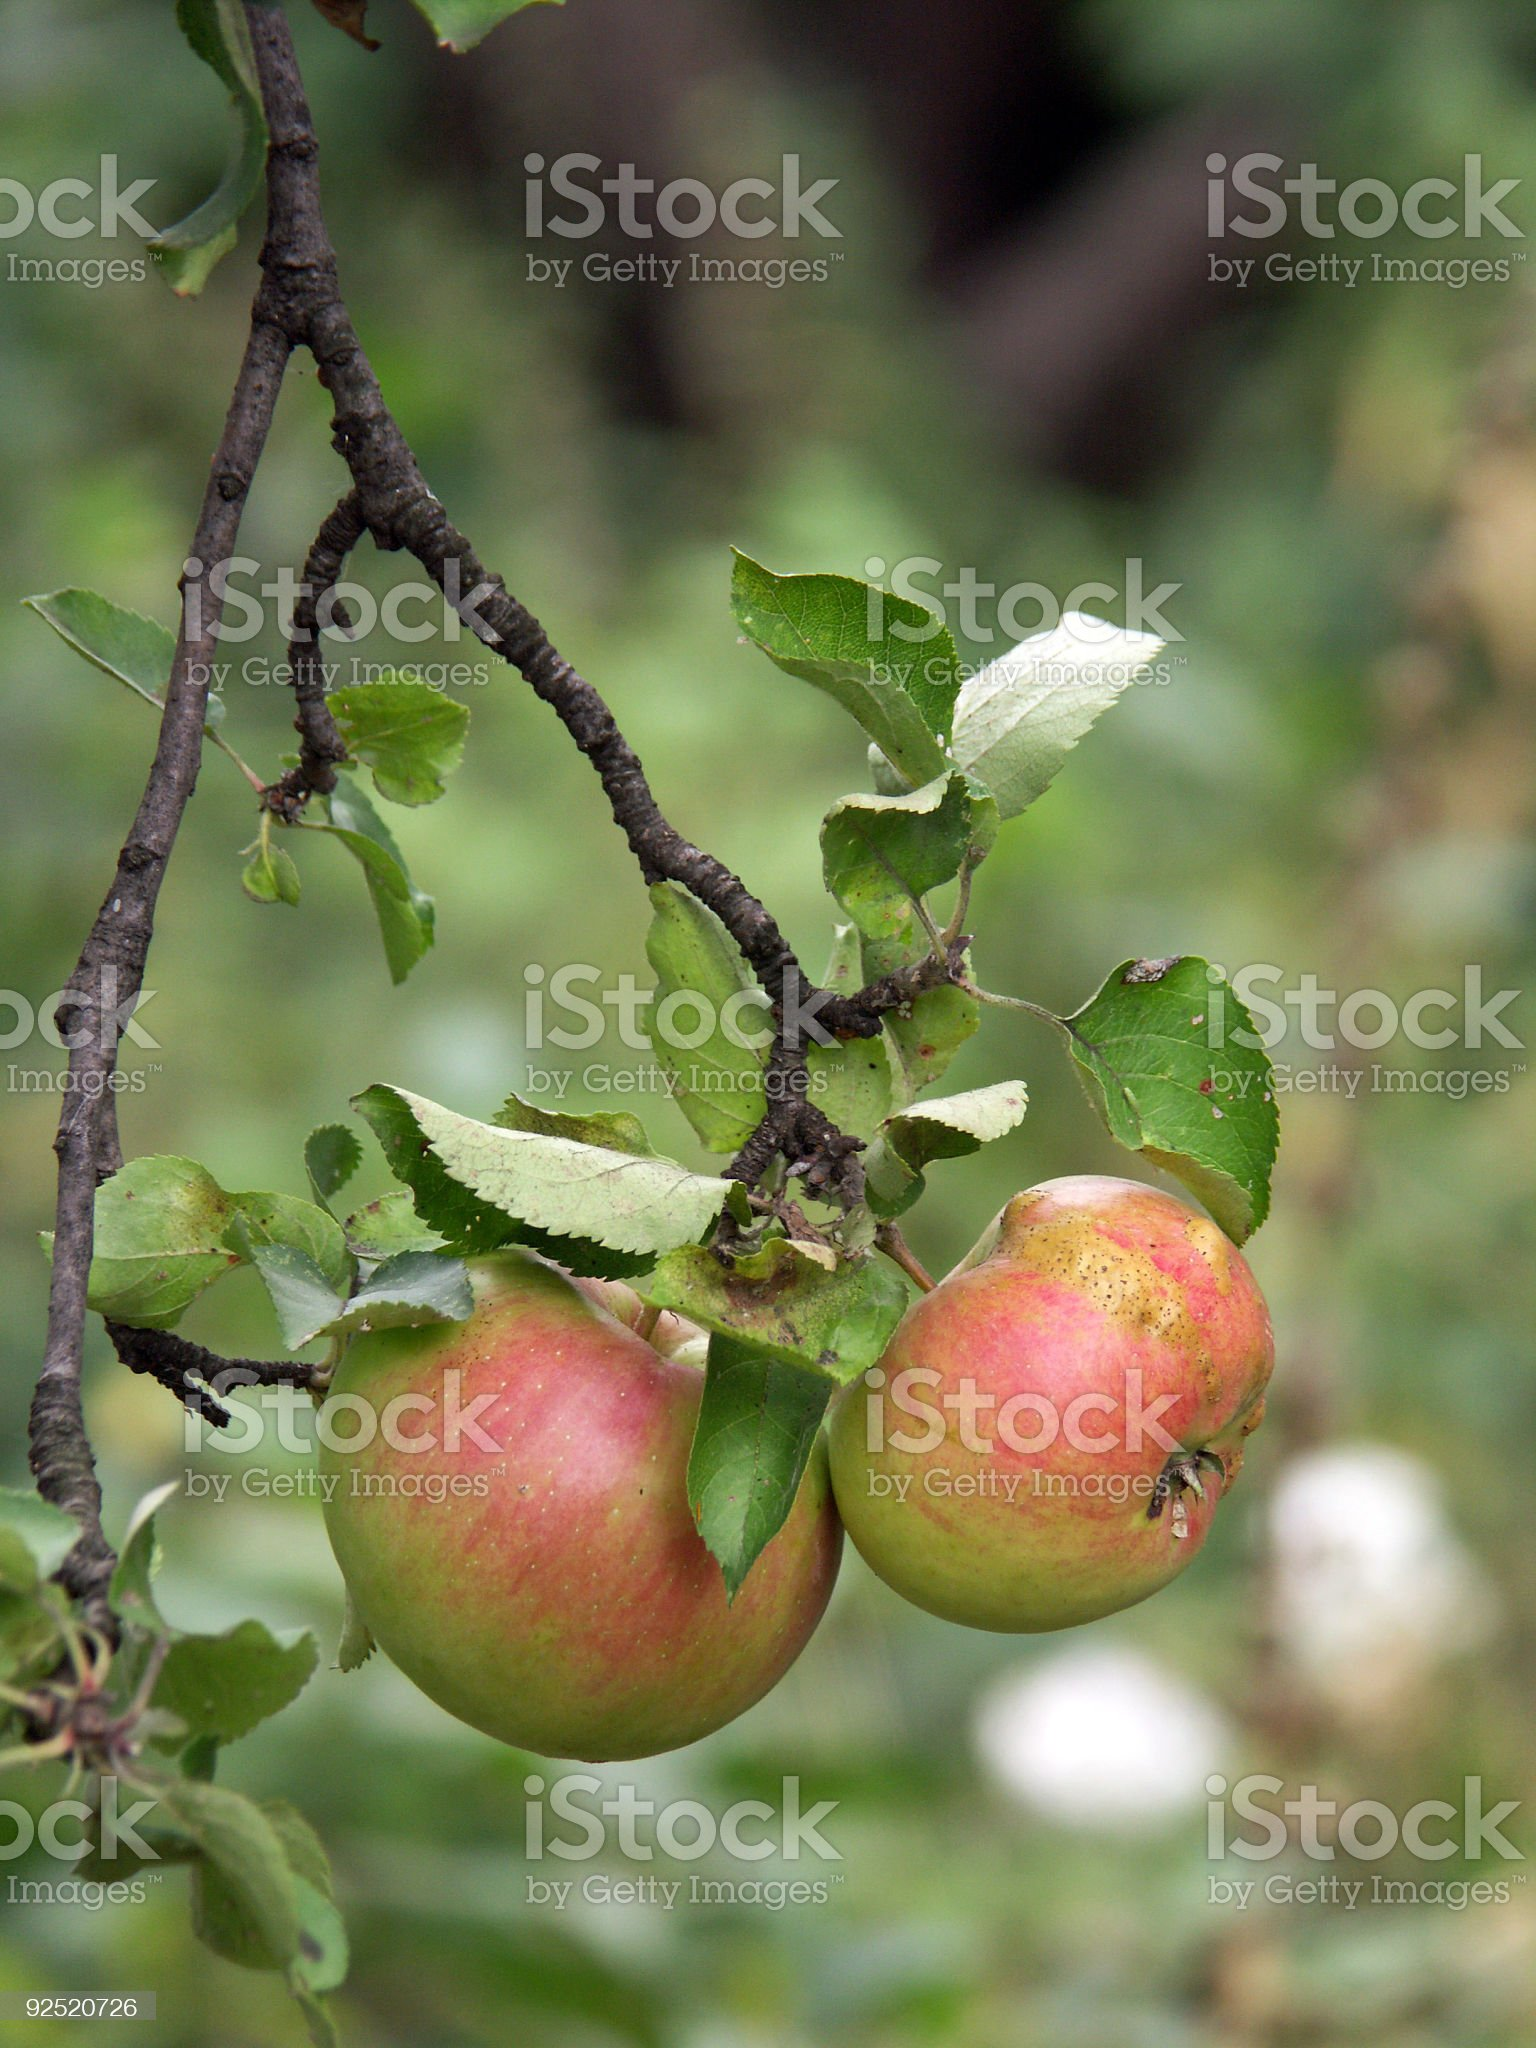 Apples on a tree branch royalty-free stock photo